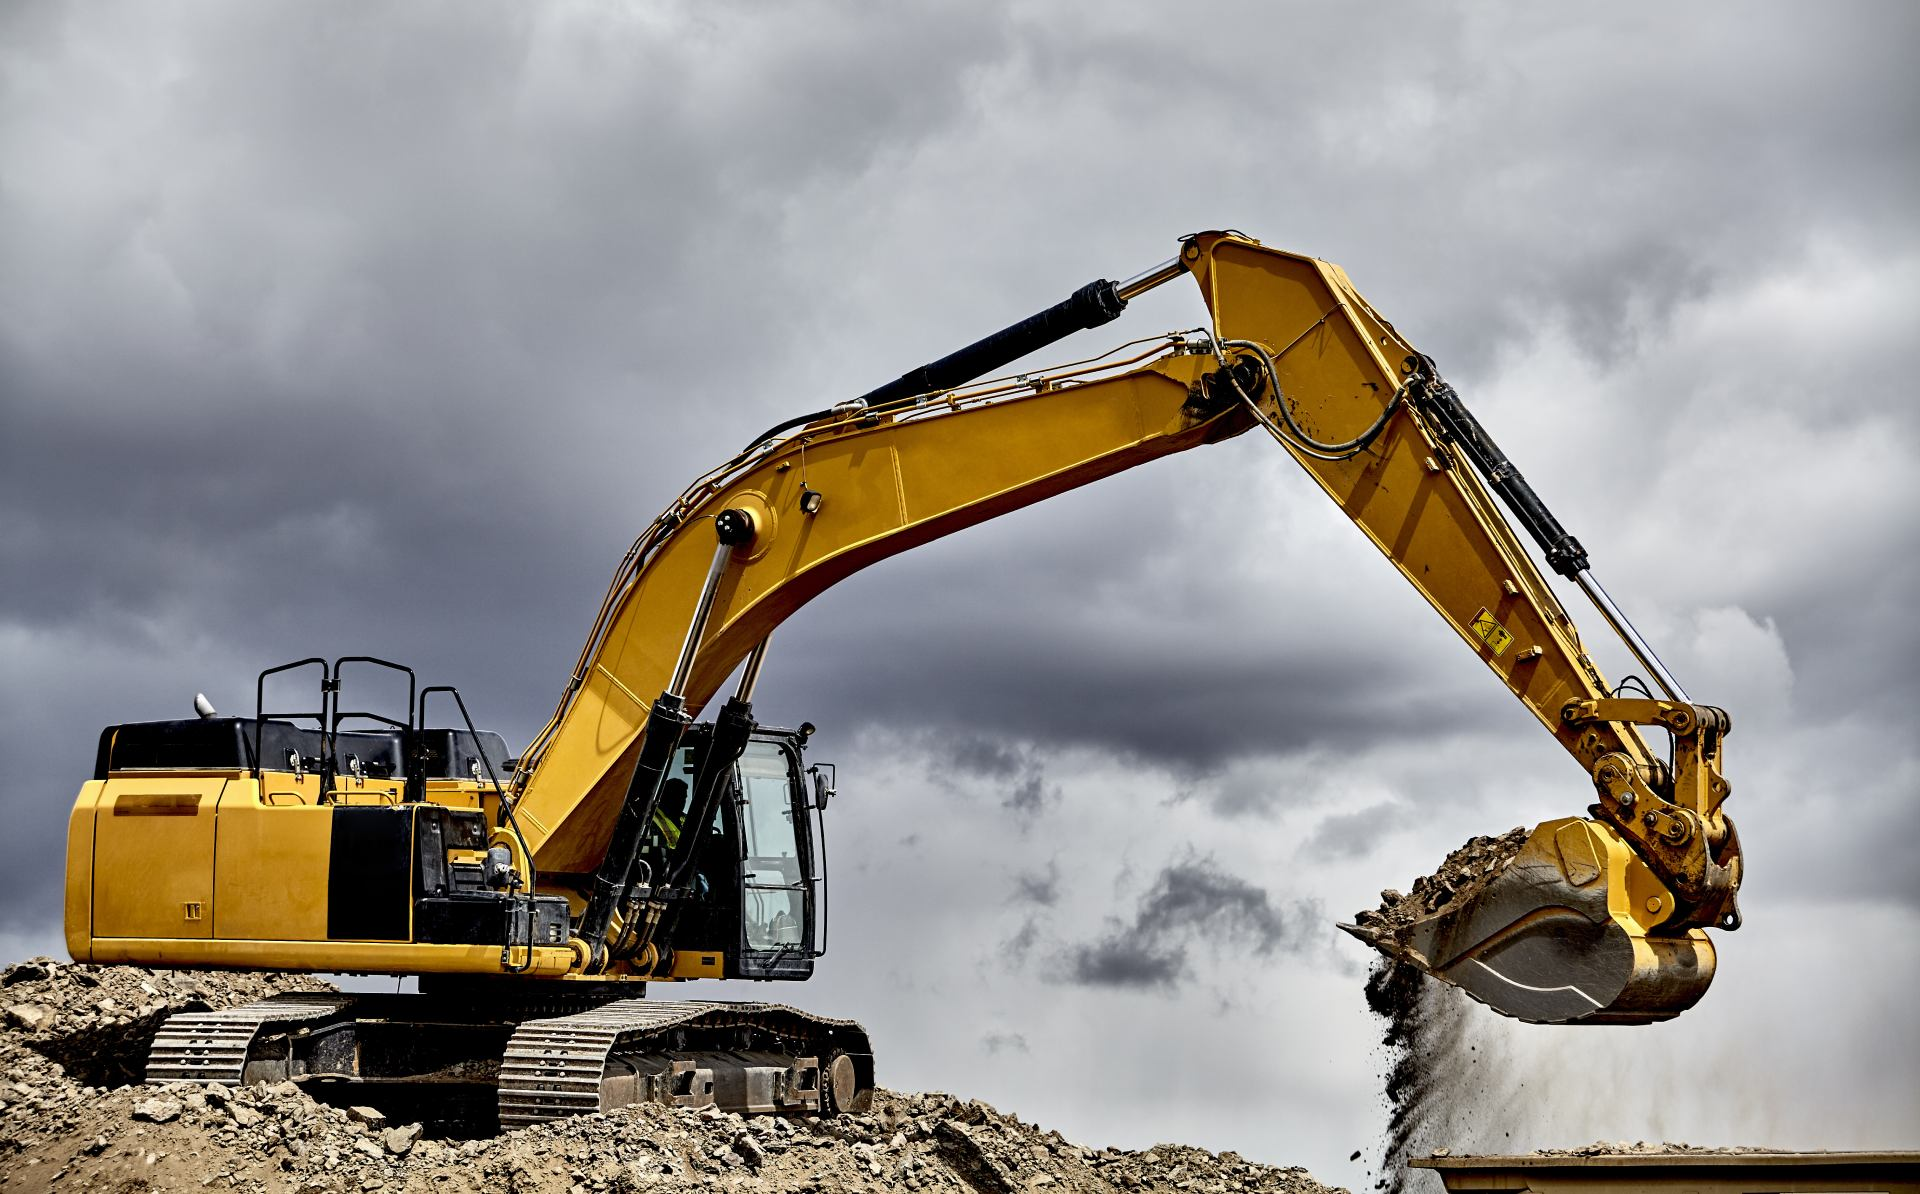 view of an excavator